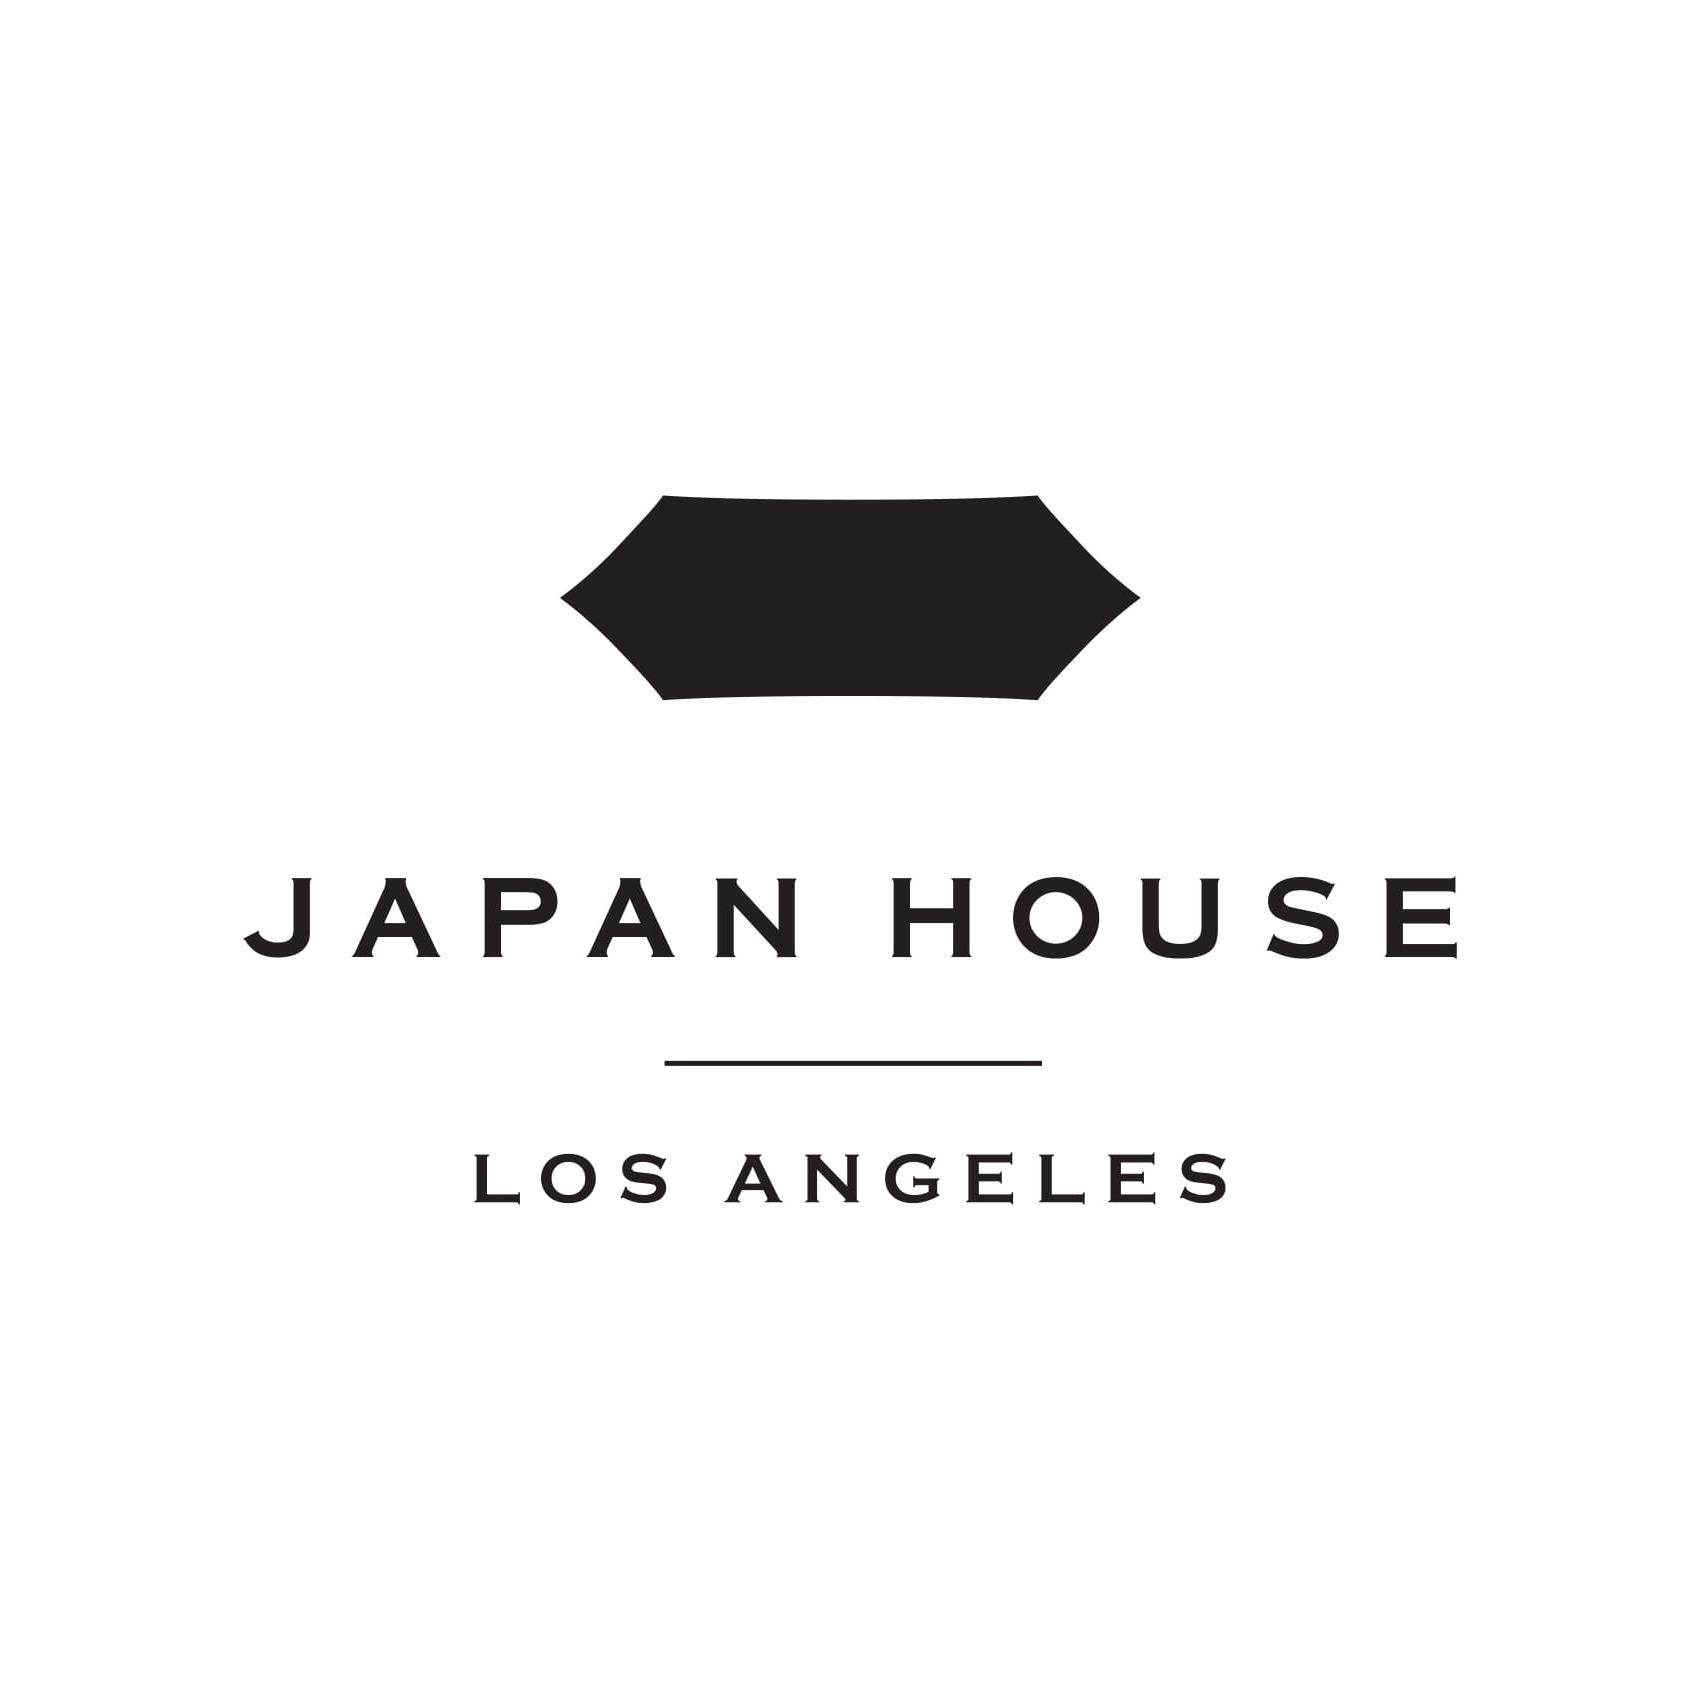 Japan House Los Angeles